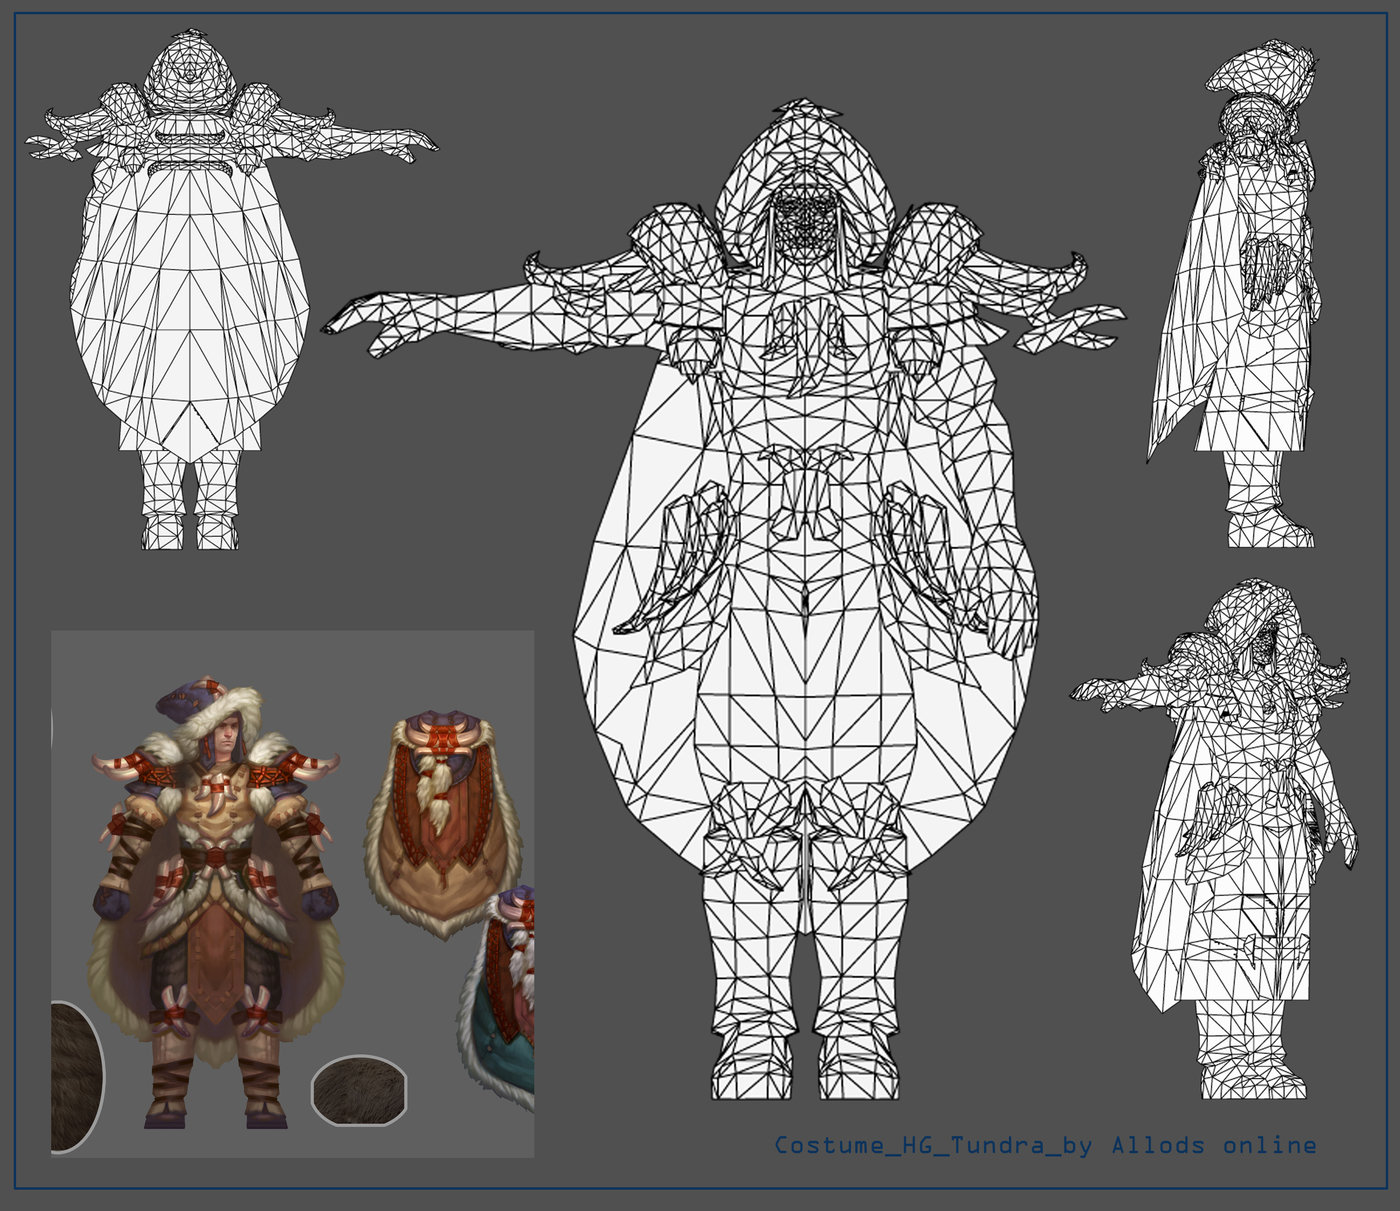 Low-poly model (for Allods online) by Olga Rodionova at